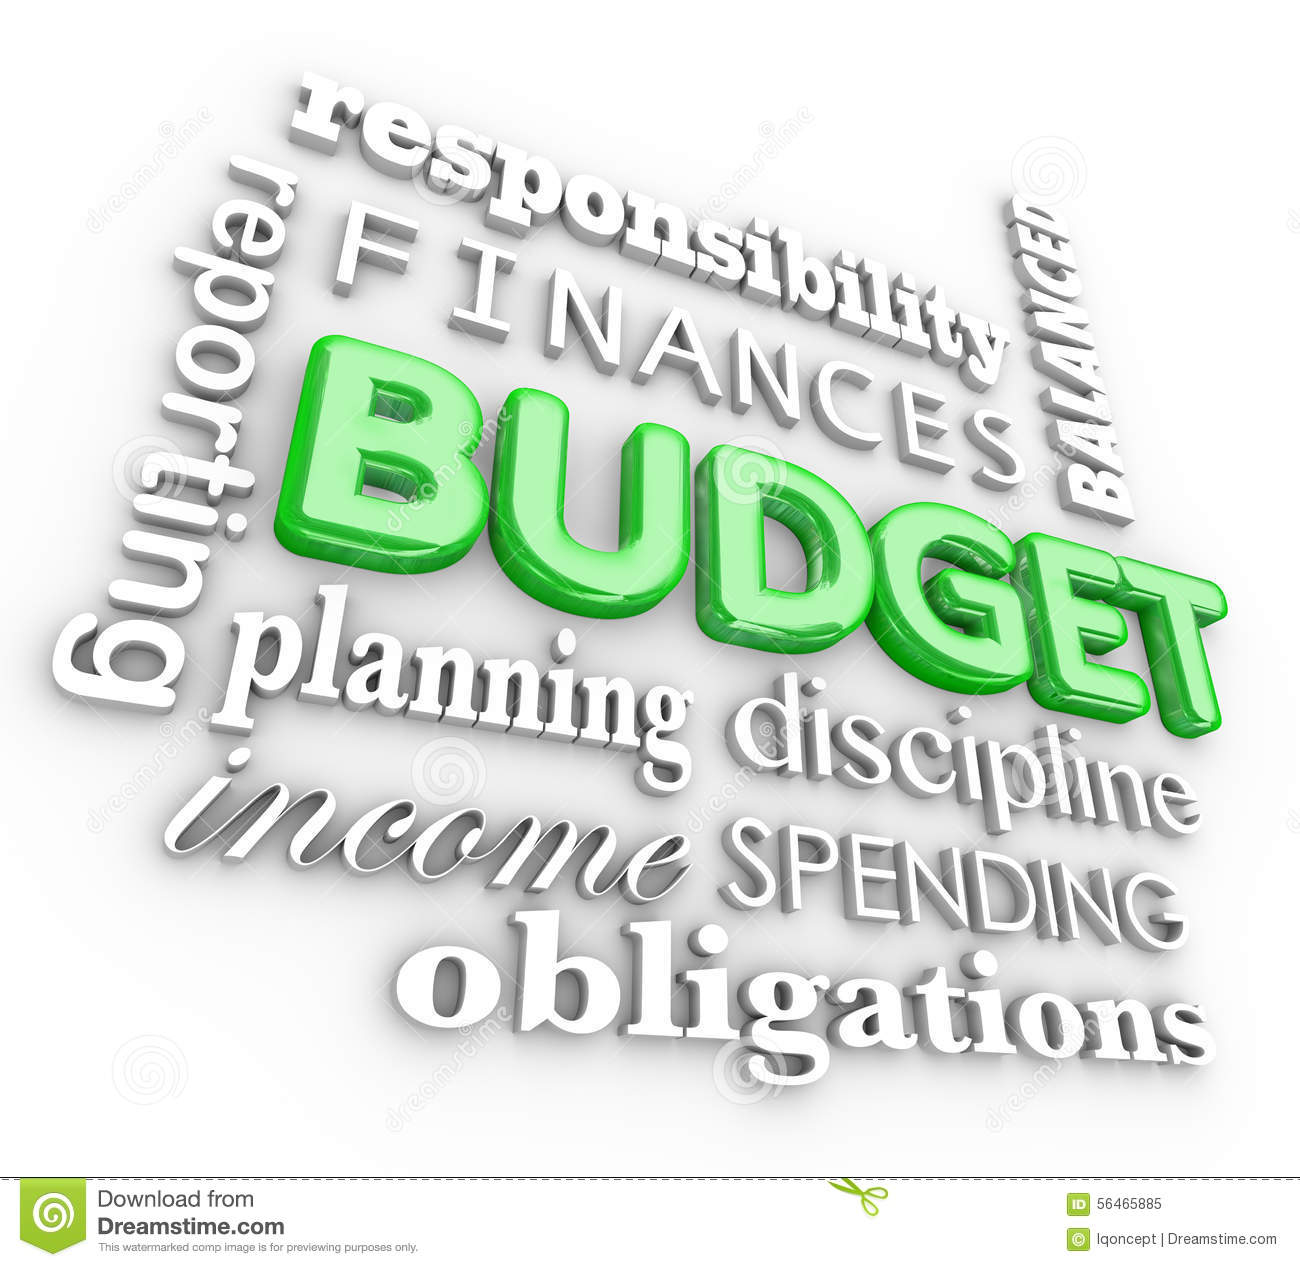 Church Finances: Budget 3d Word Collage Planning Finances Spending Saving